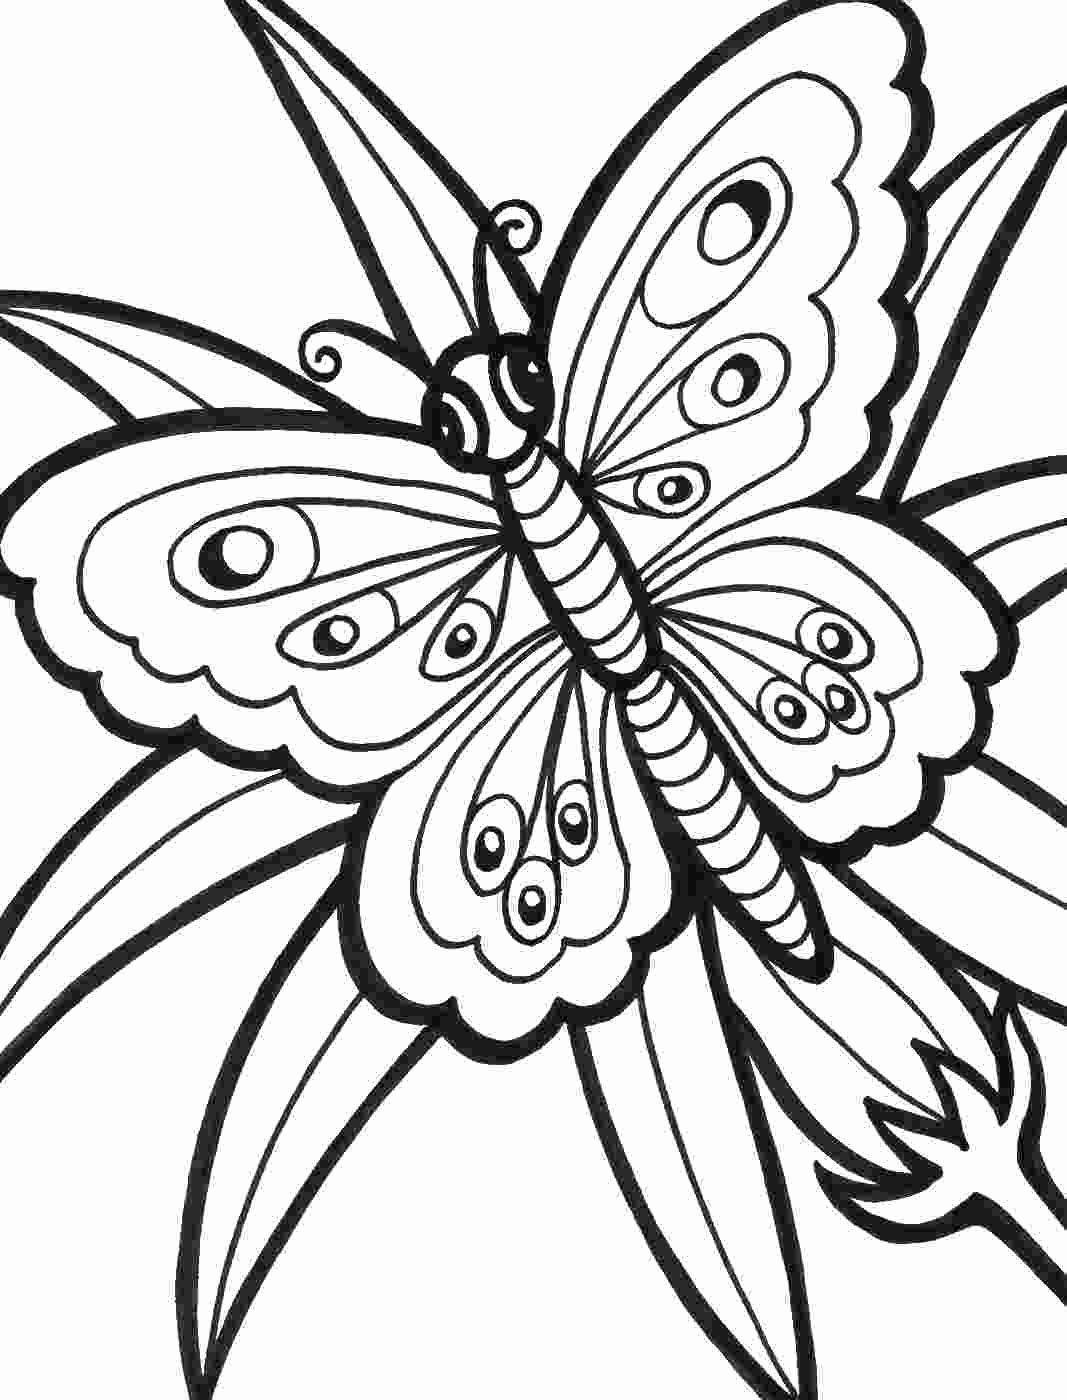 Butterflies Coloring Pages For Adults New Printable Coloring Pages Of Flowers And In 2020 Butterfly Coloring Page Printable Flower Coloring Pages Flower Coloring Pages